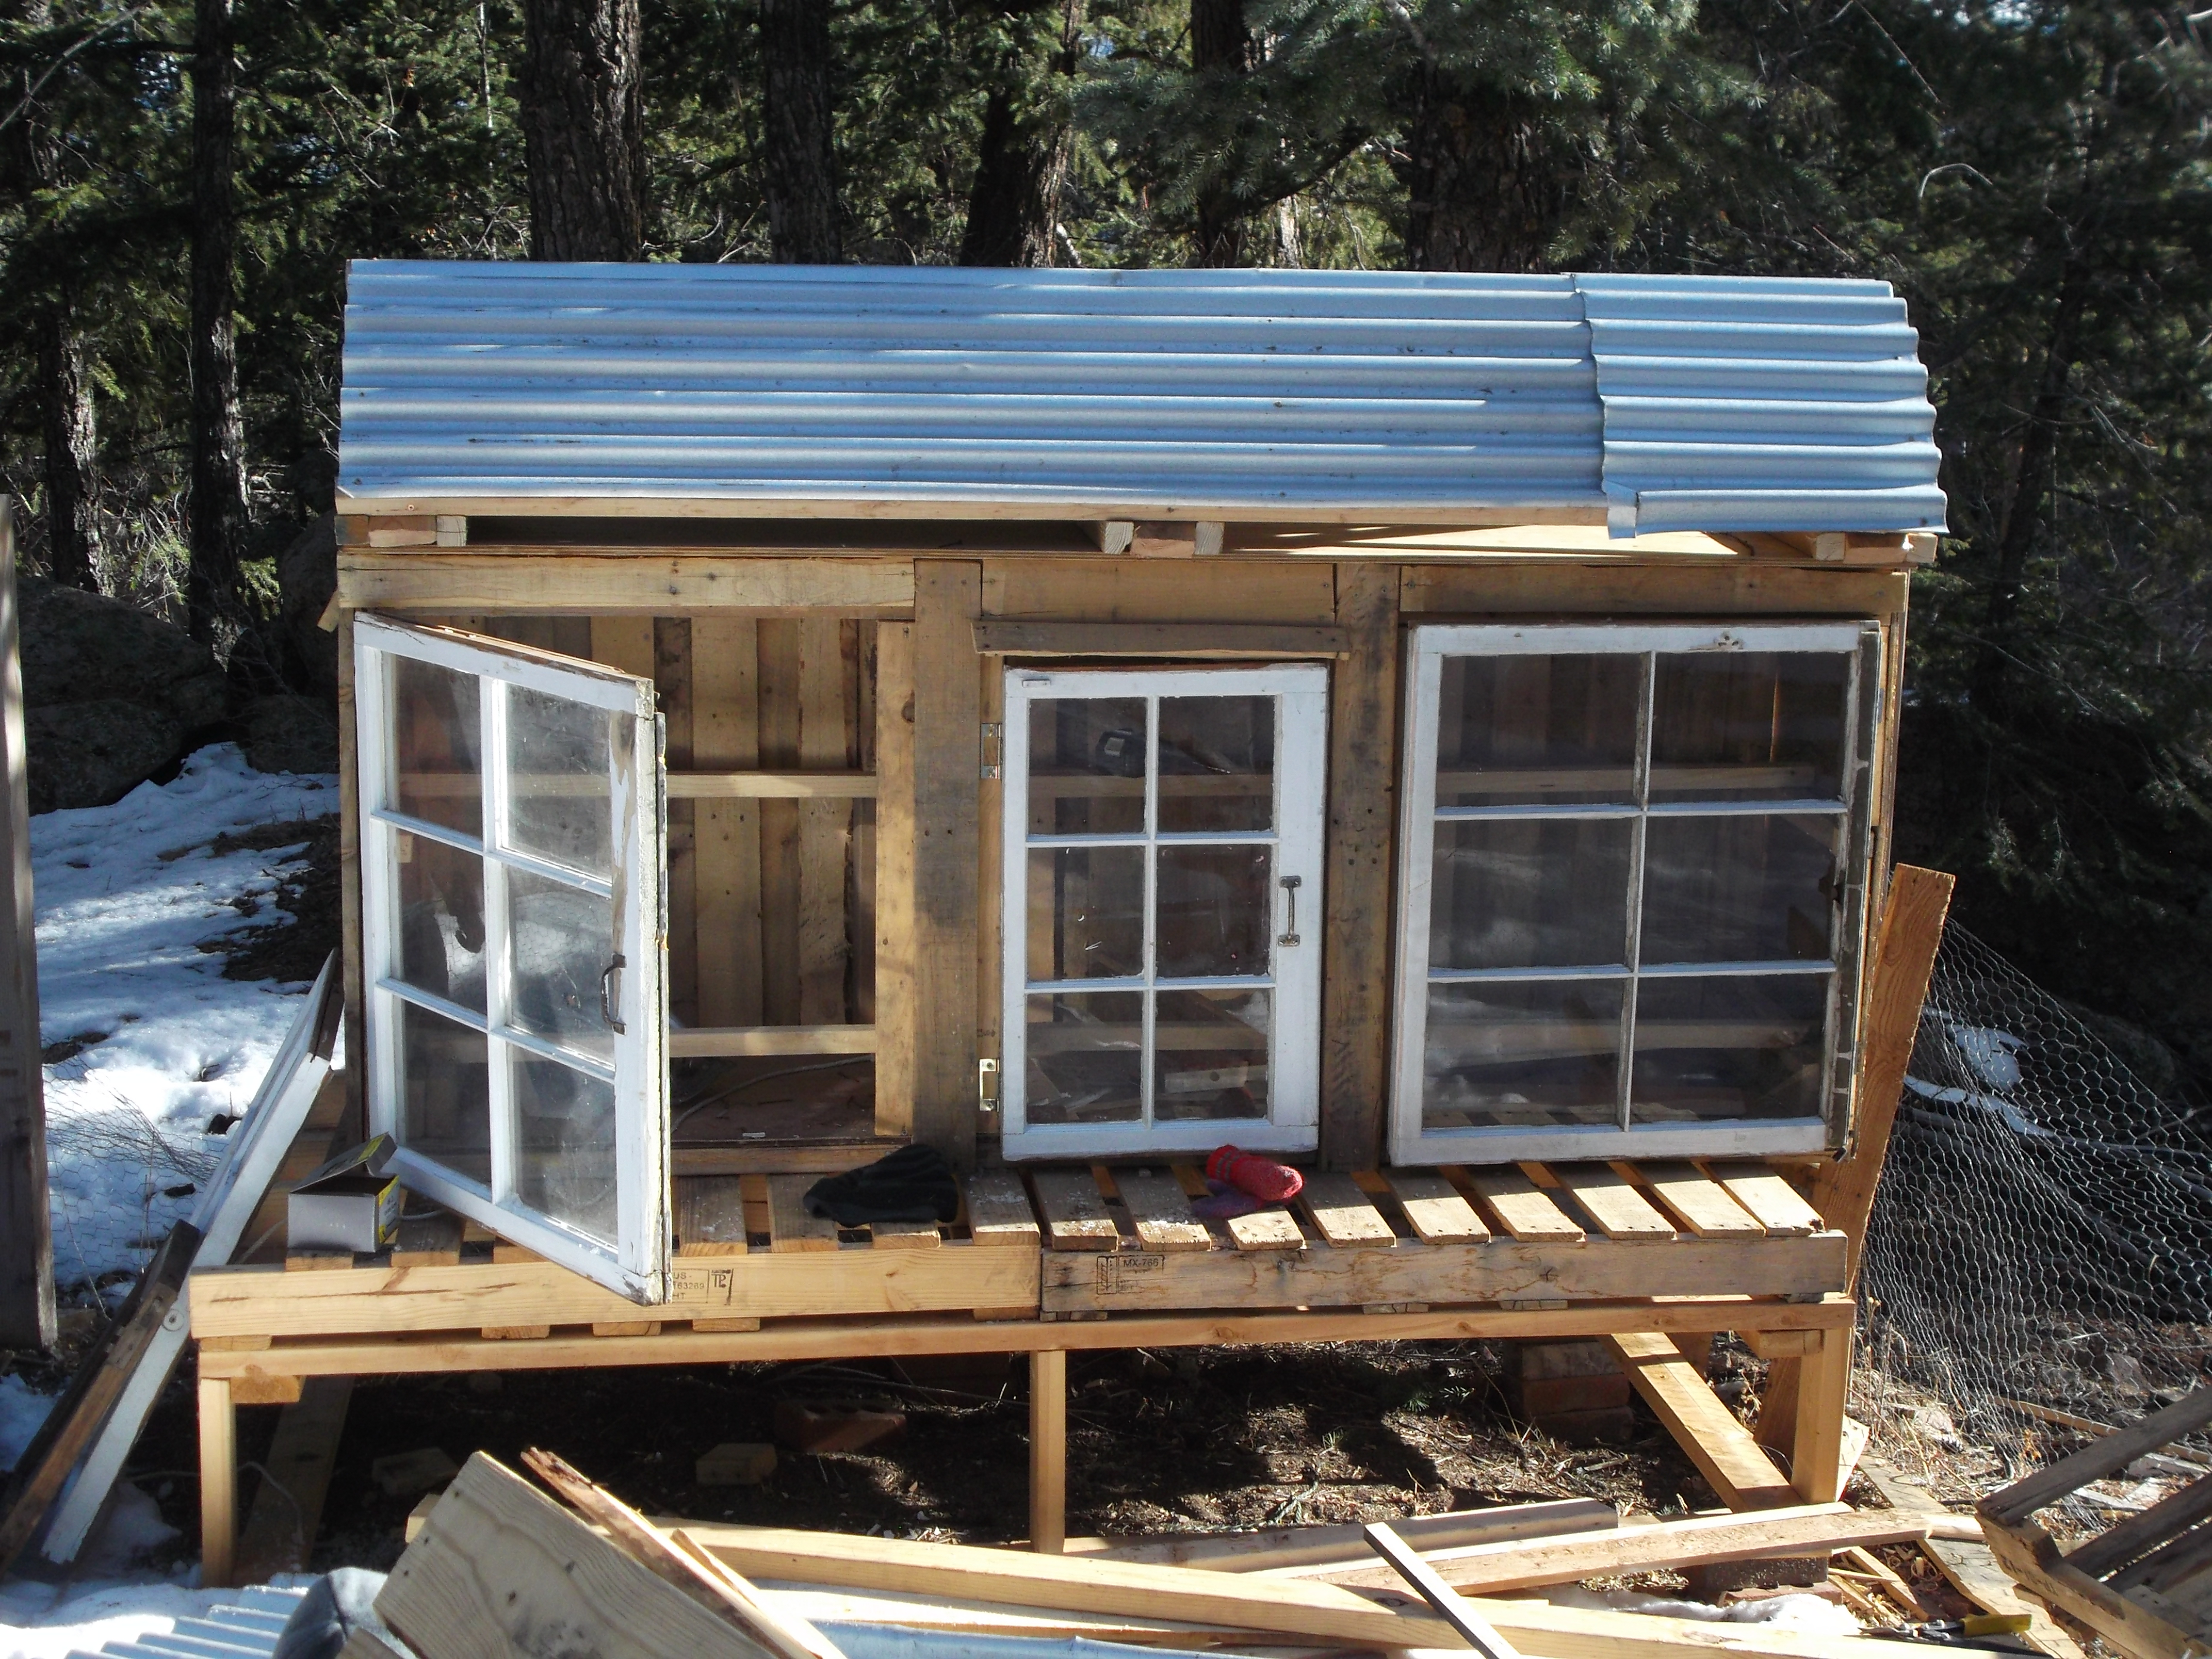 How To Build A Chicken Coop From Wood Pallets Plans